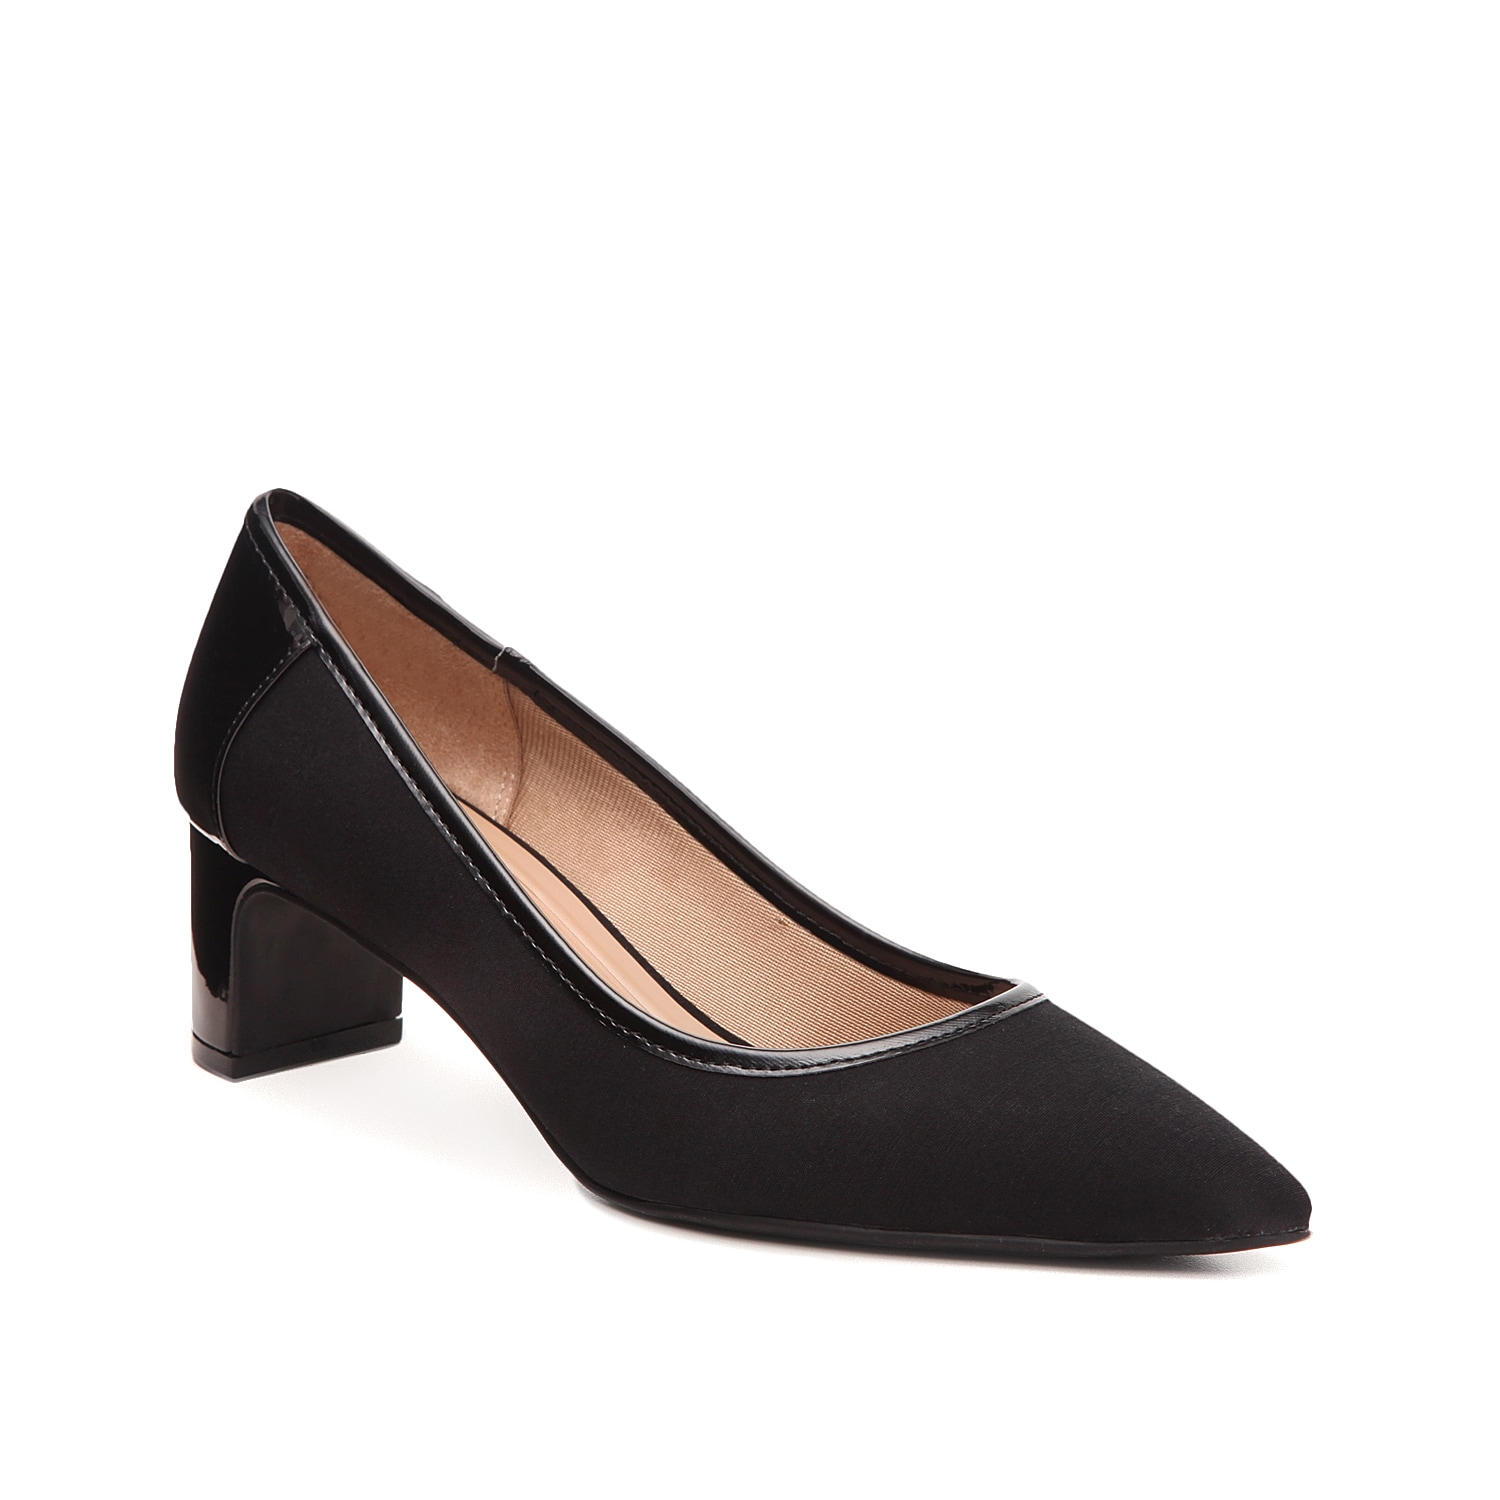 The Alice pump from Abella flaunts classic styling that\\\'s easy to pair with any outfit. A pointed toe and block heel create a sophisticated silhouette while the True Comfort footbed cushions every step.